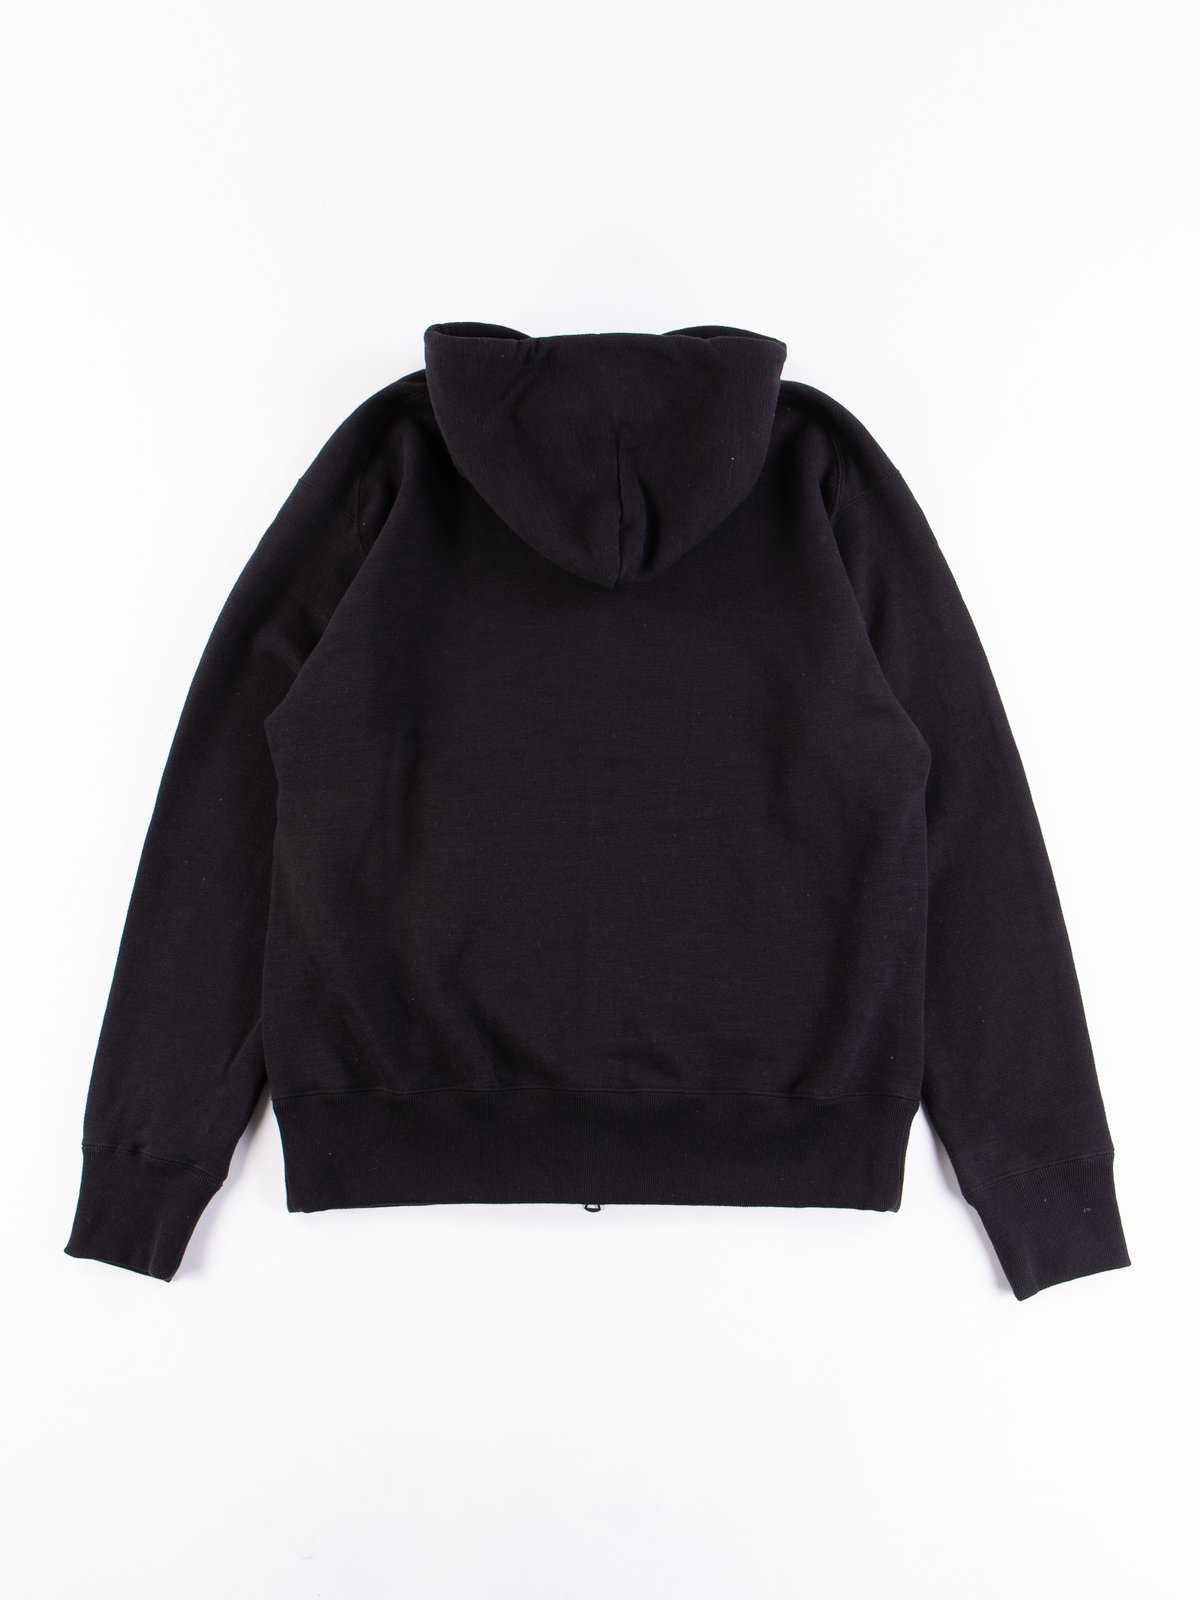 Black GG Full Zip Sweatshirt - Image 6